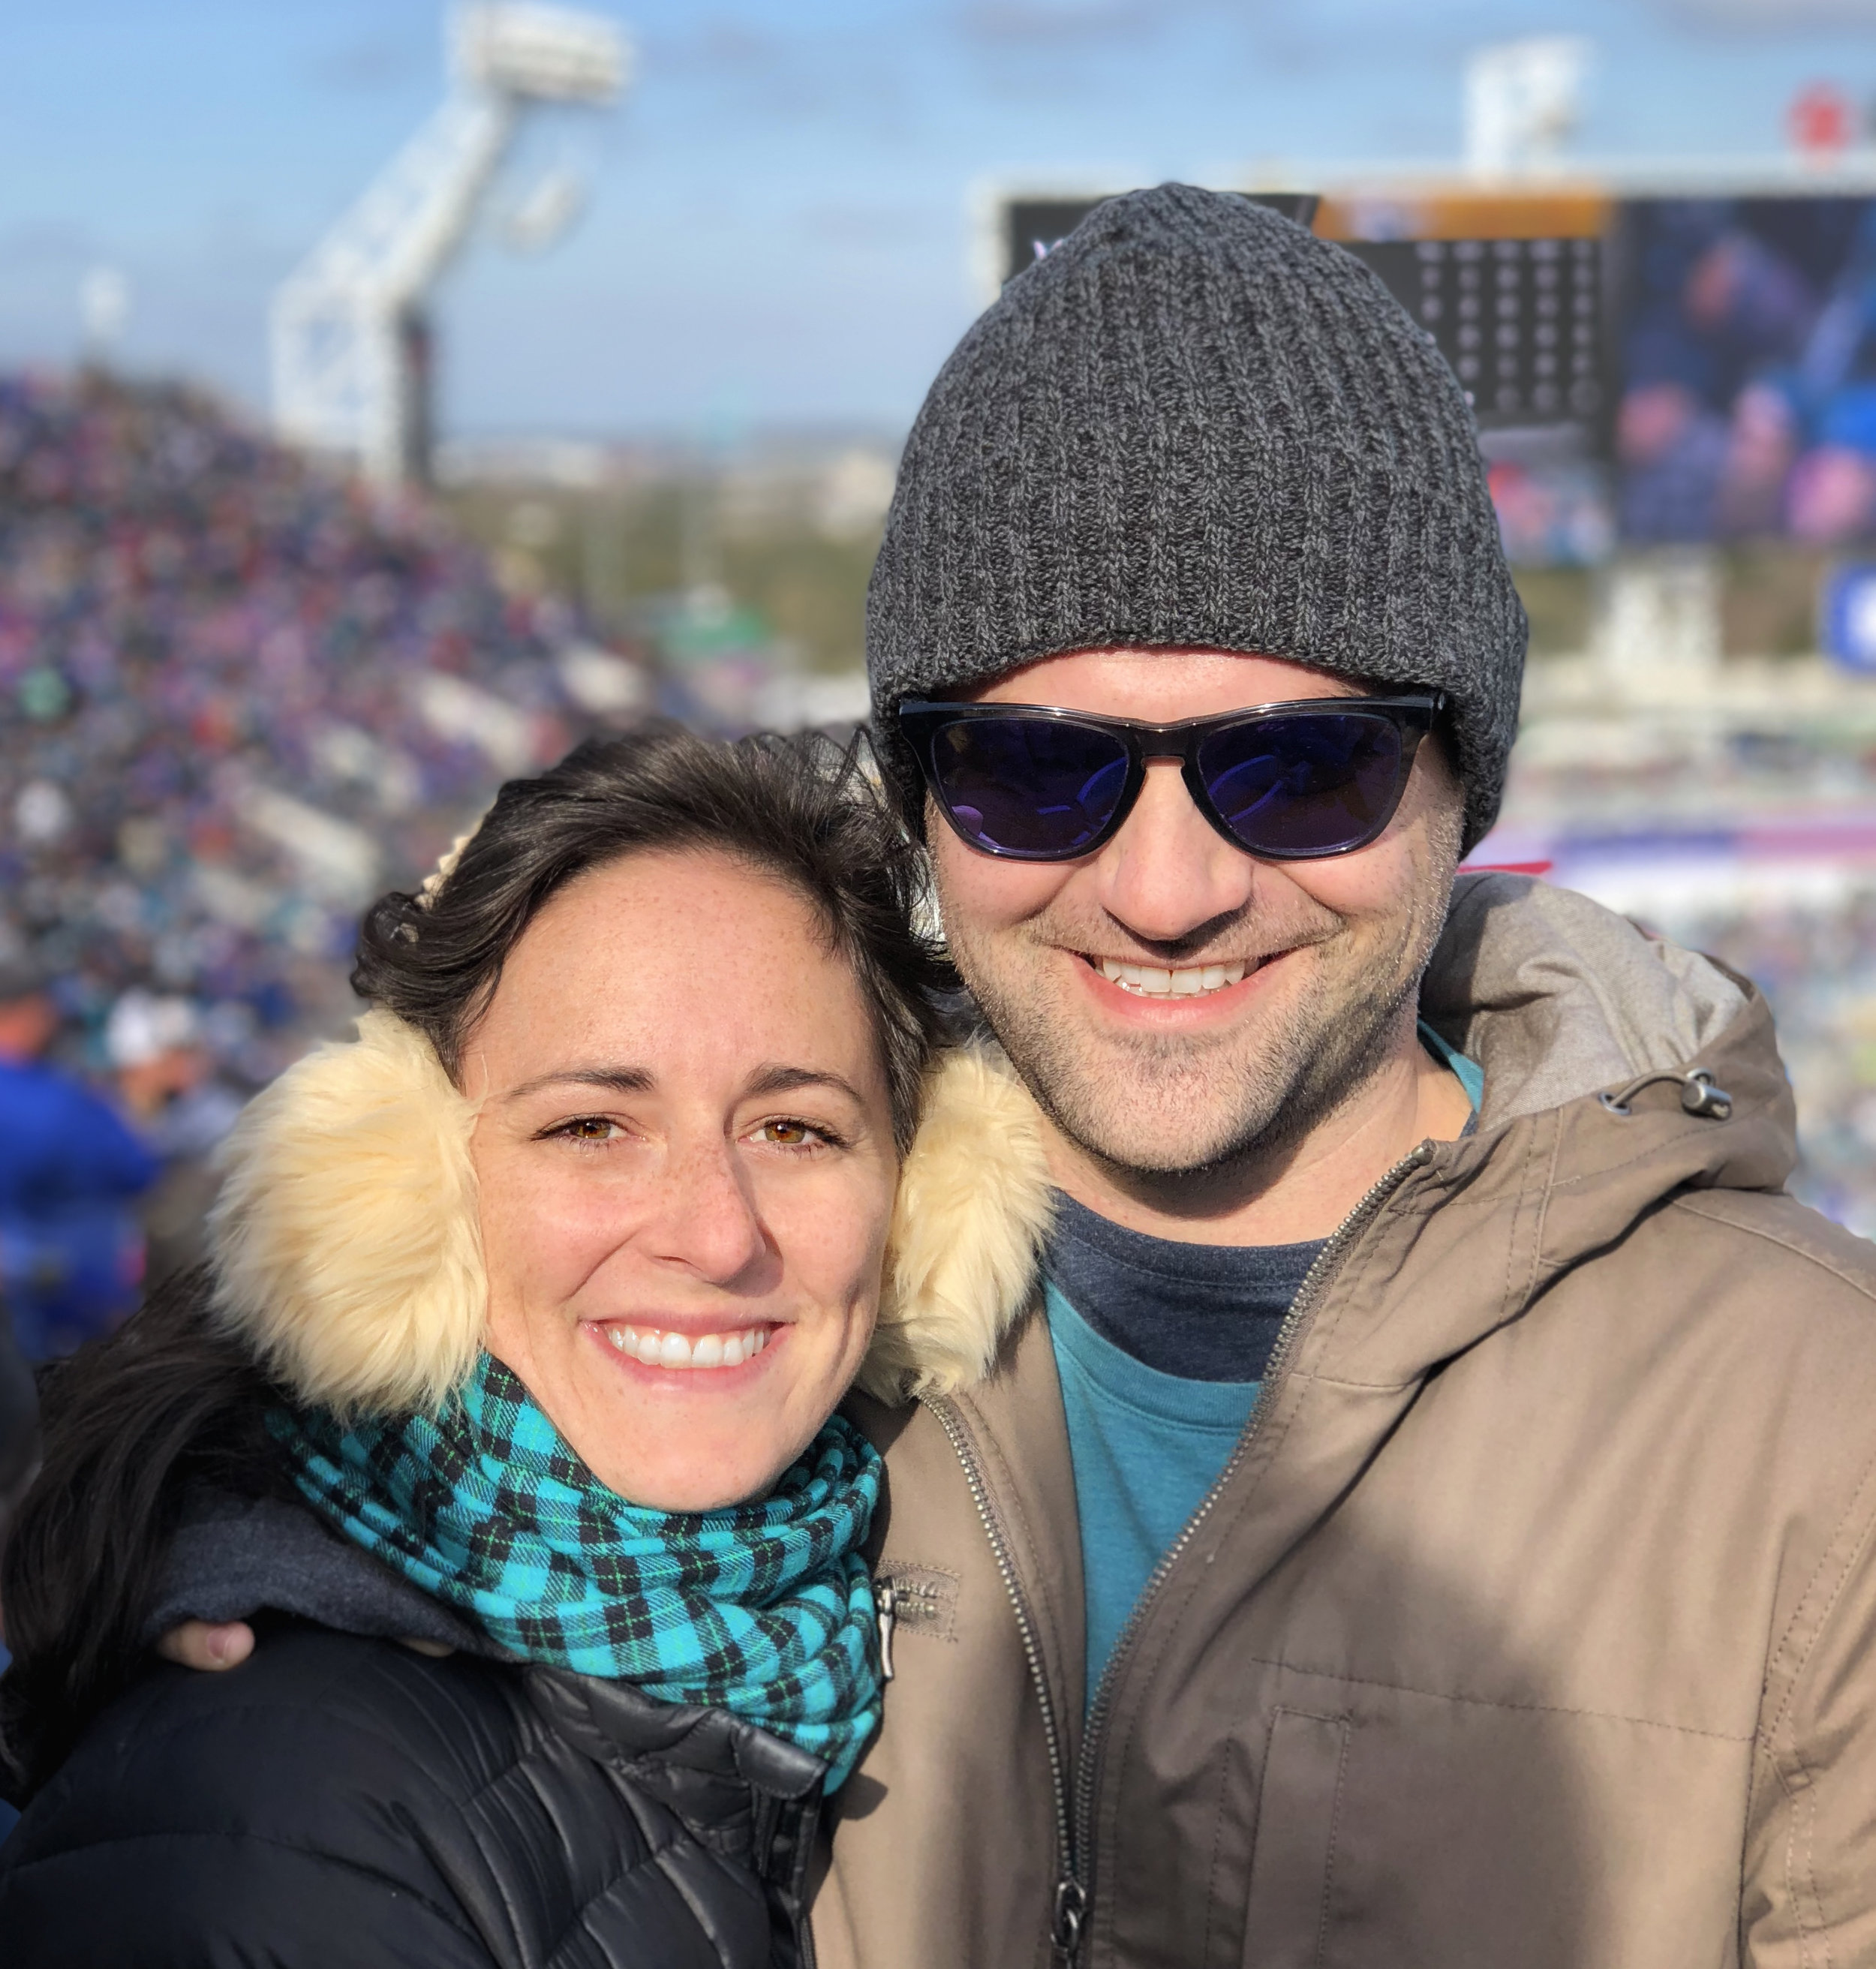 Being a fan at the Jaguars vs. Bills game during last week's wildcard playoff weekend. After freezing myself half to hypothermia in my first playoff game a decade ago, I took no chances  with the cold and bundled up with ear muffs, a scarf, a down jacket, and - not pictured - running shoes and wool socks.